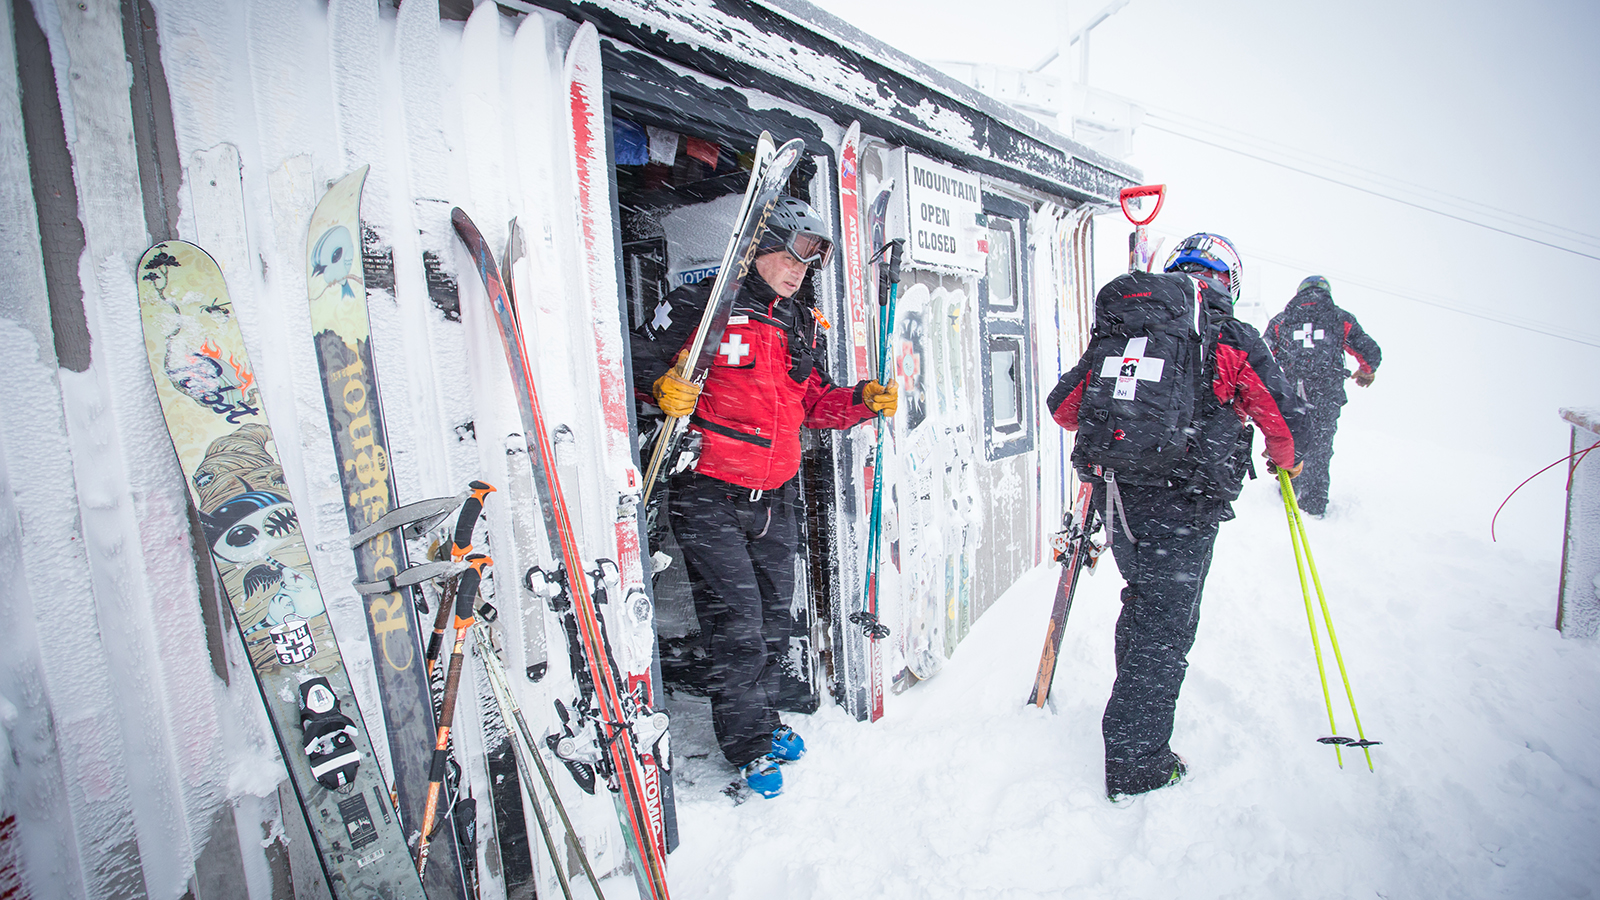 Patrollers walk out of Corbet's Cabin in Jackson Hole. Photo: Amy Jimmerson